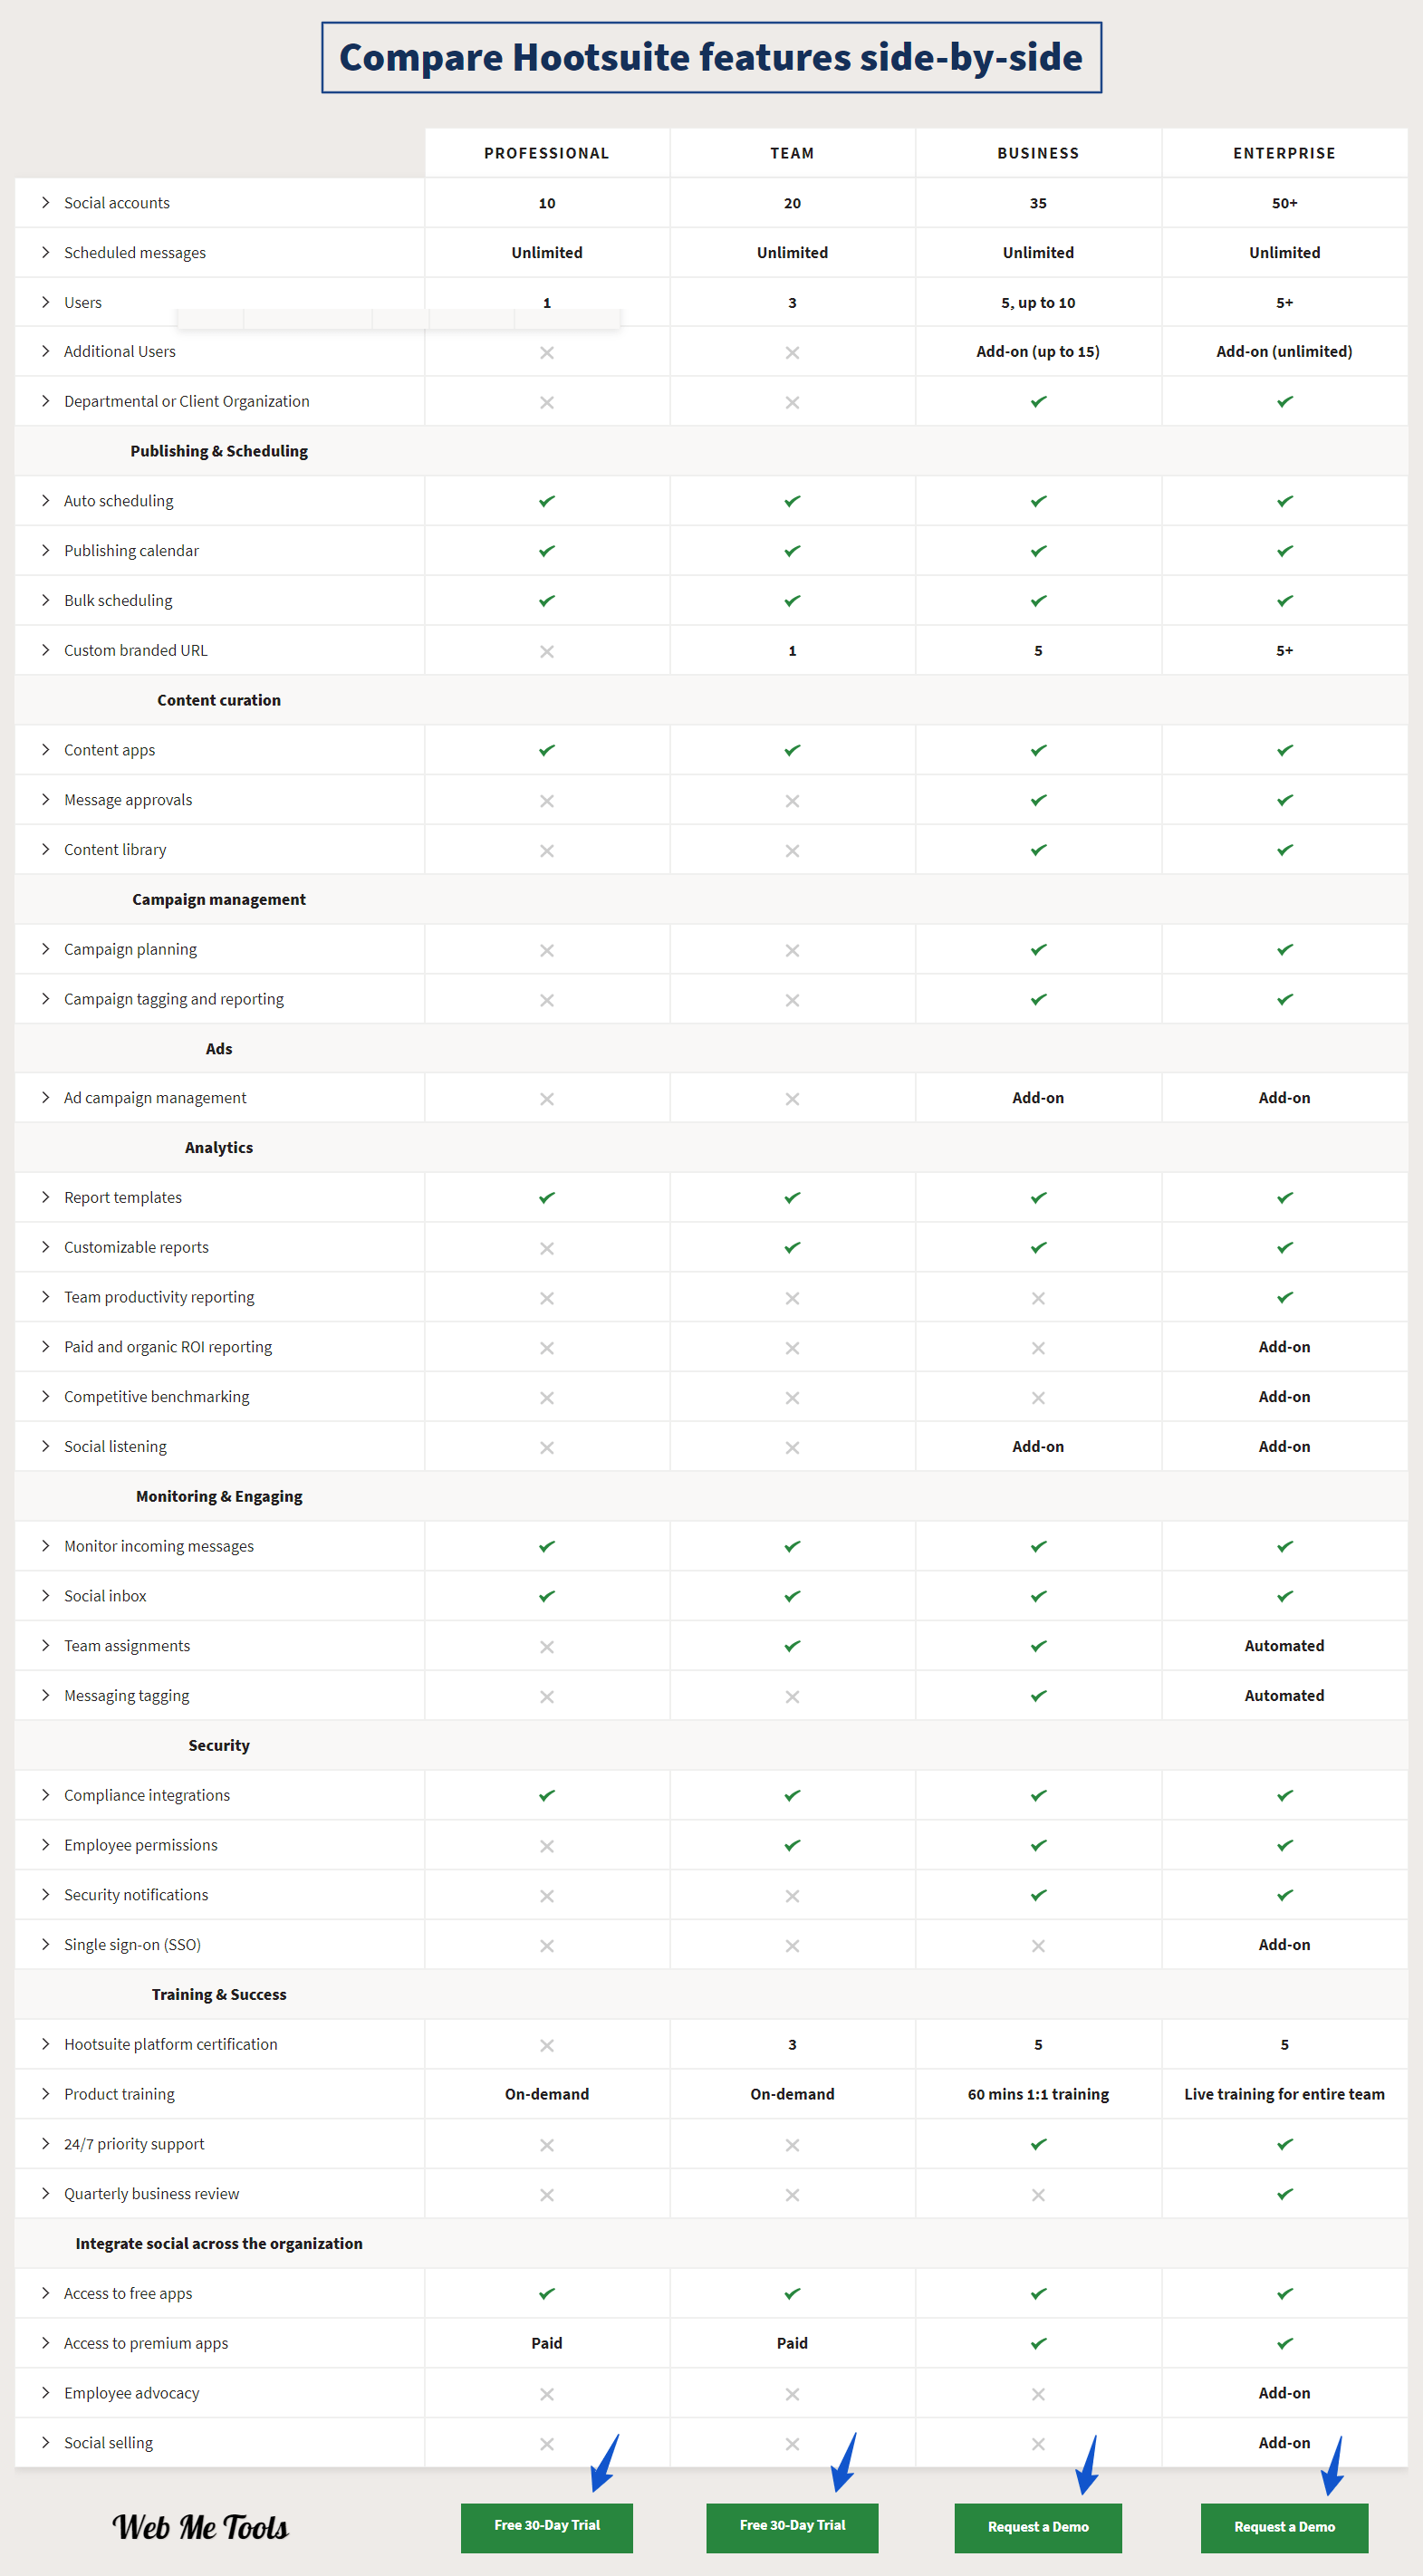 Hootsuite Pricing Plans Features Compared